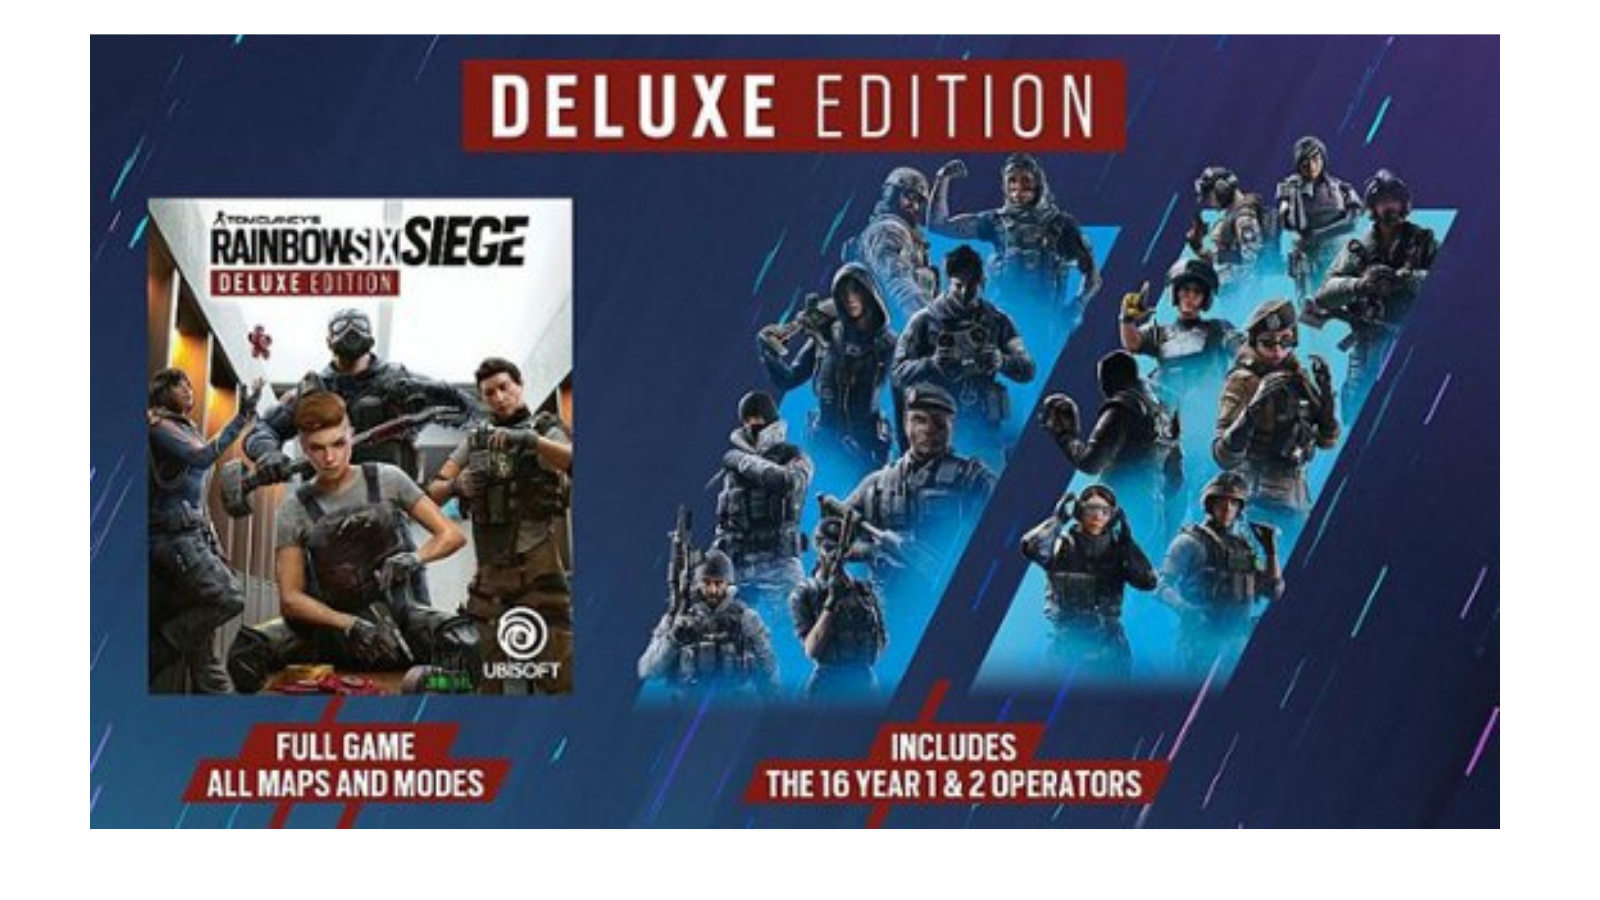 Save $25 on Tom Clancy's Rainbow Six Siege Deluxe Edition